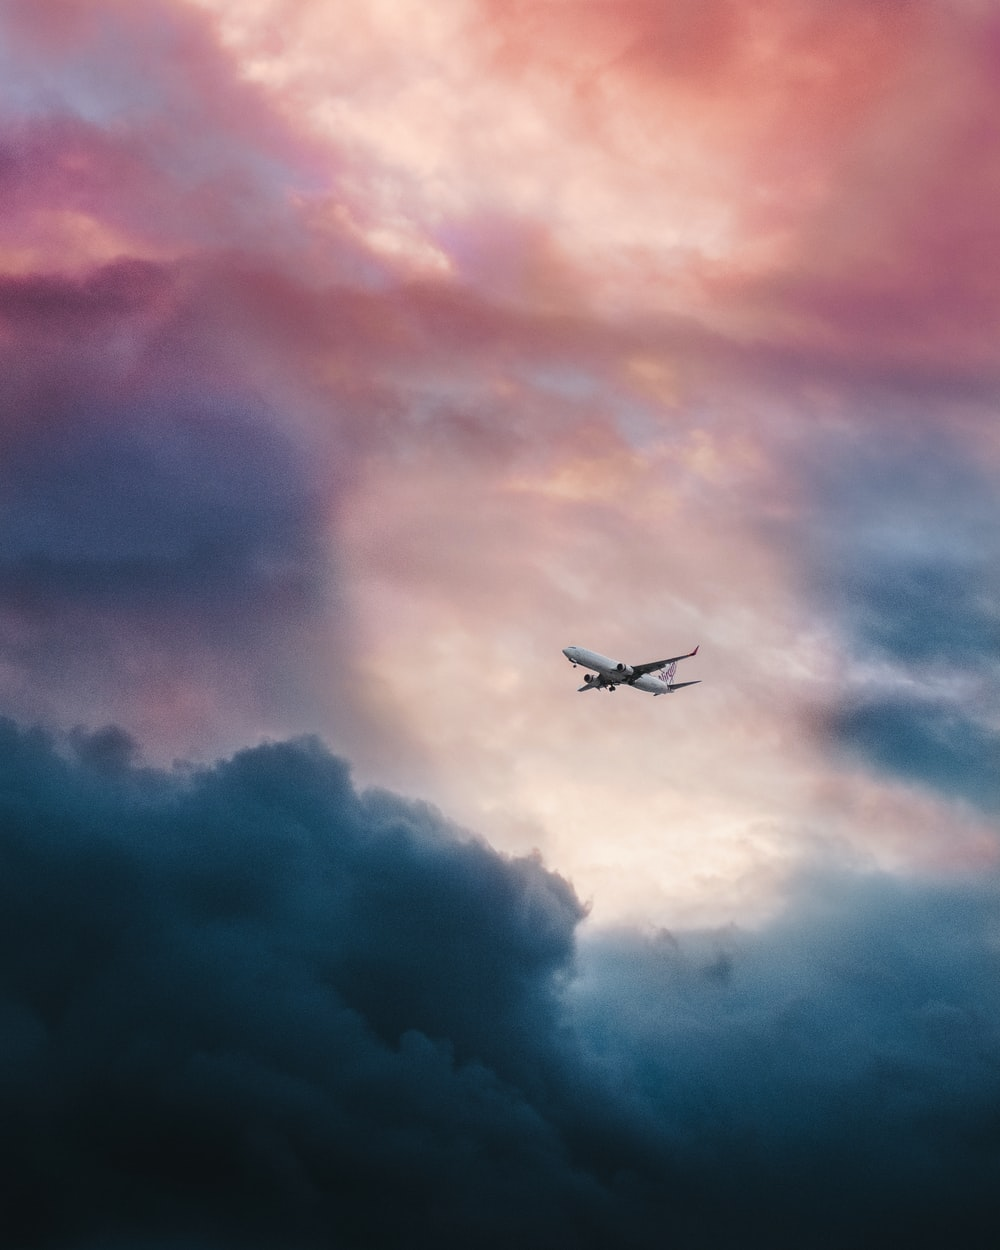 white plane flying over gray clouds